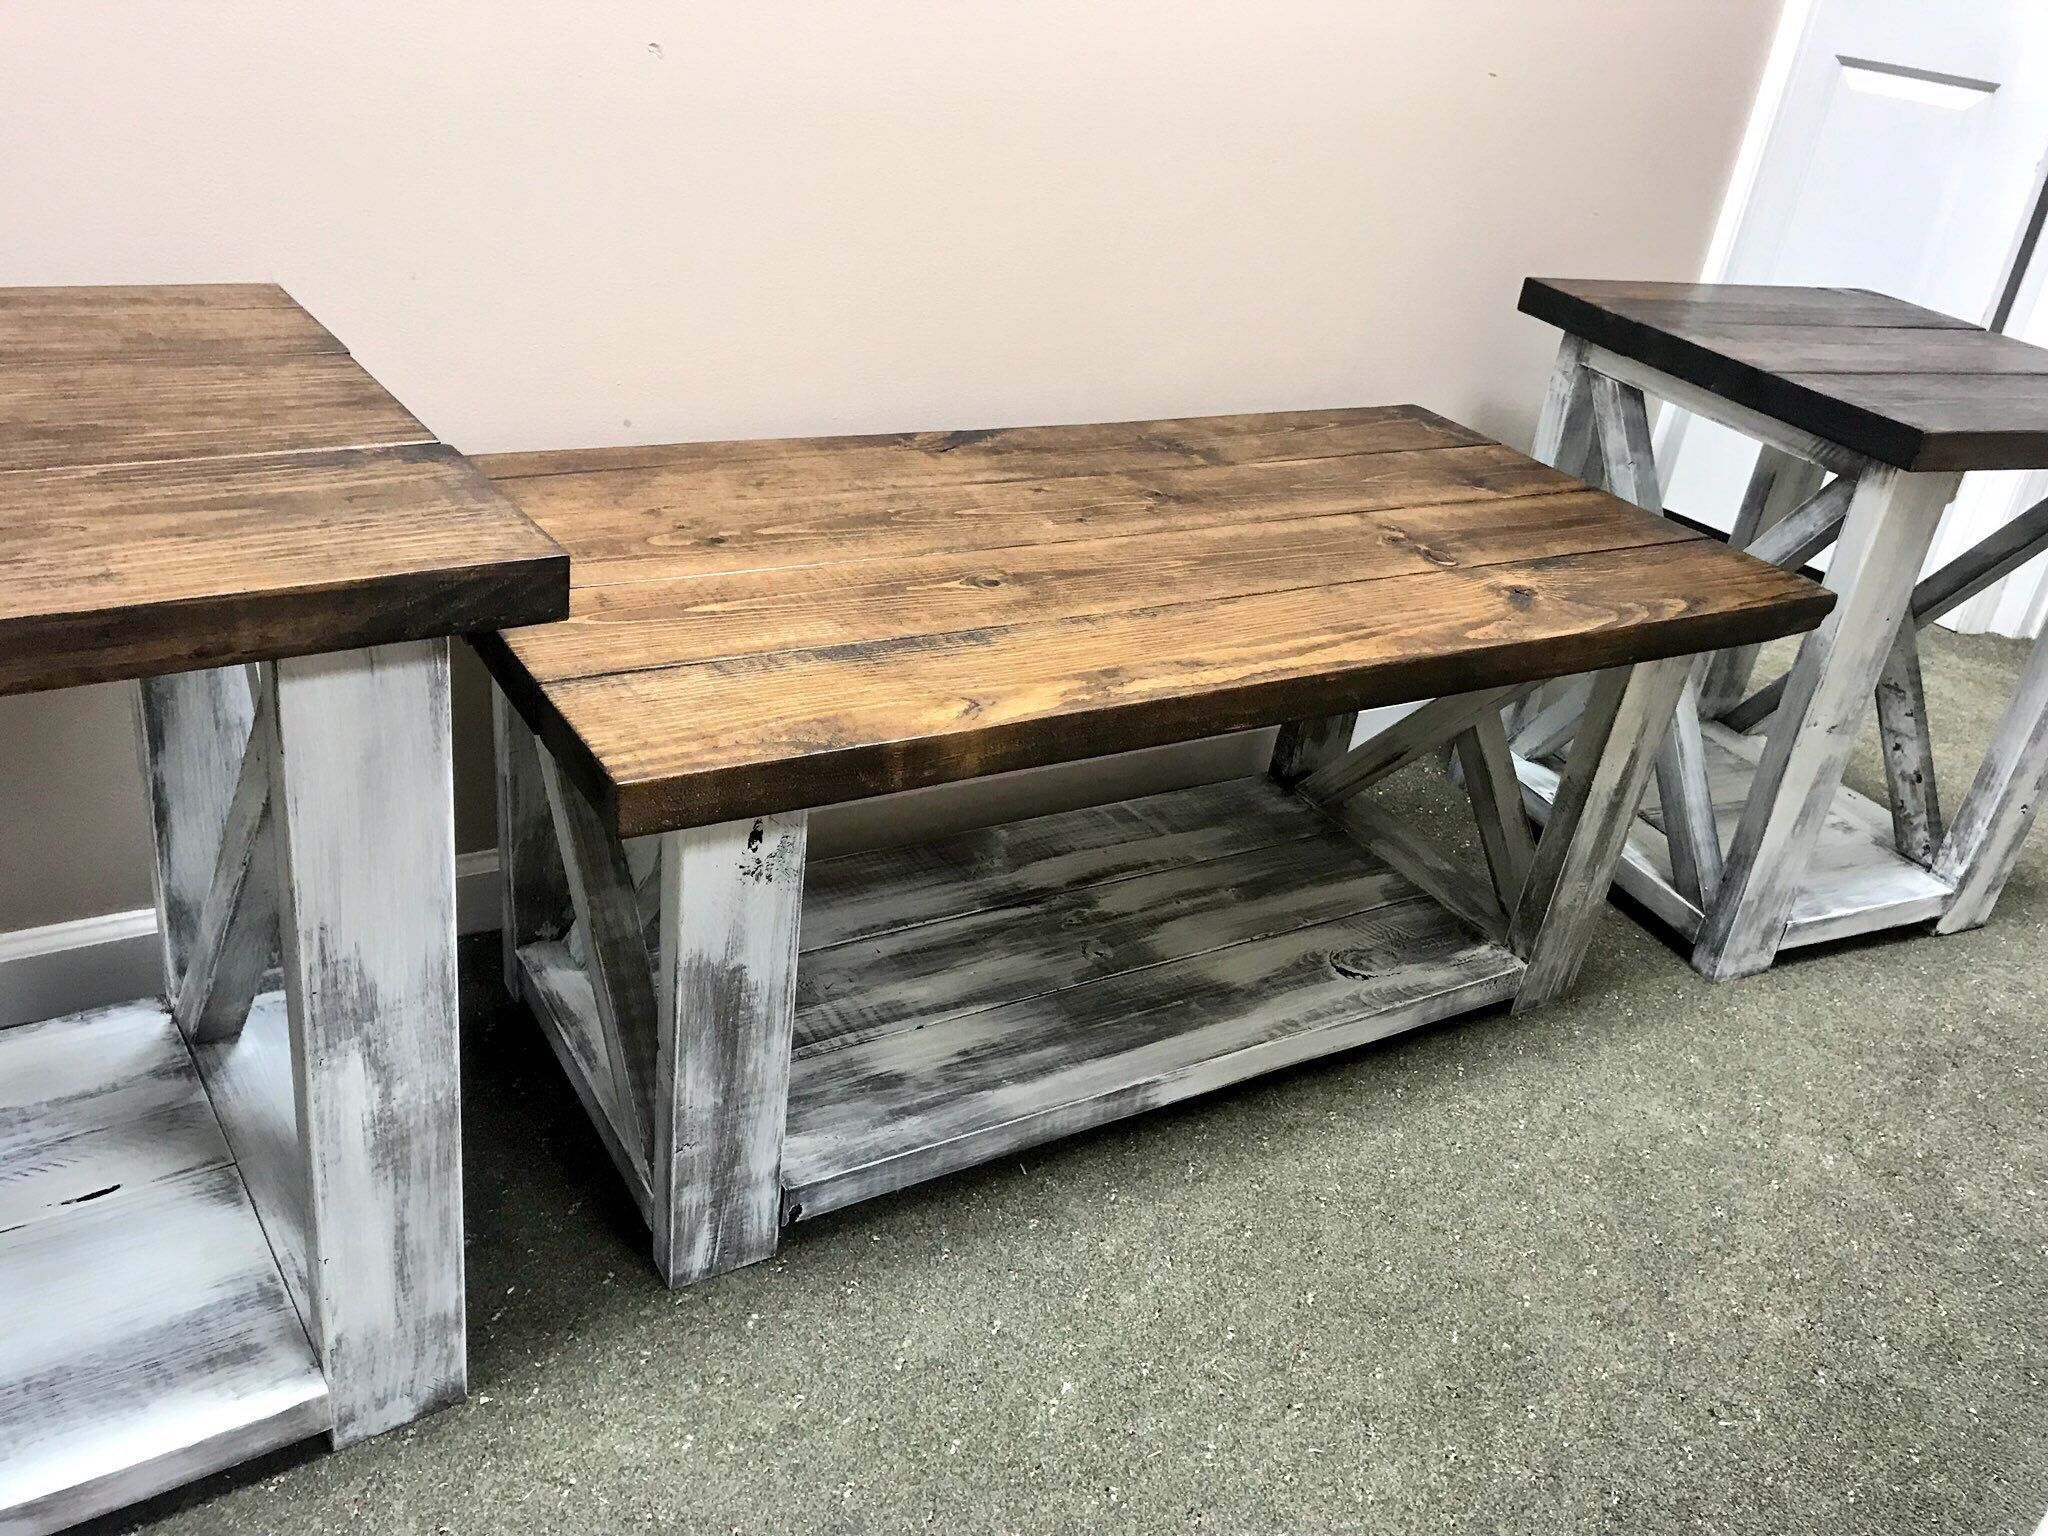 Farmhouse Living Room Set End Tables Set And Coffee Table Etsy Farm House Living Room Living Room Table Sets Rustic Living Room #rustic #living #room #table #sets